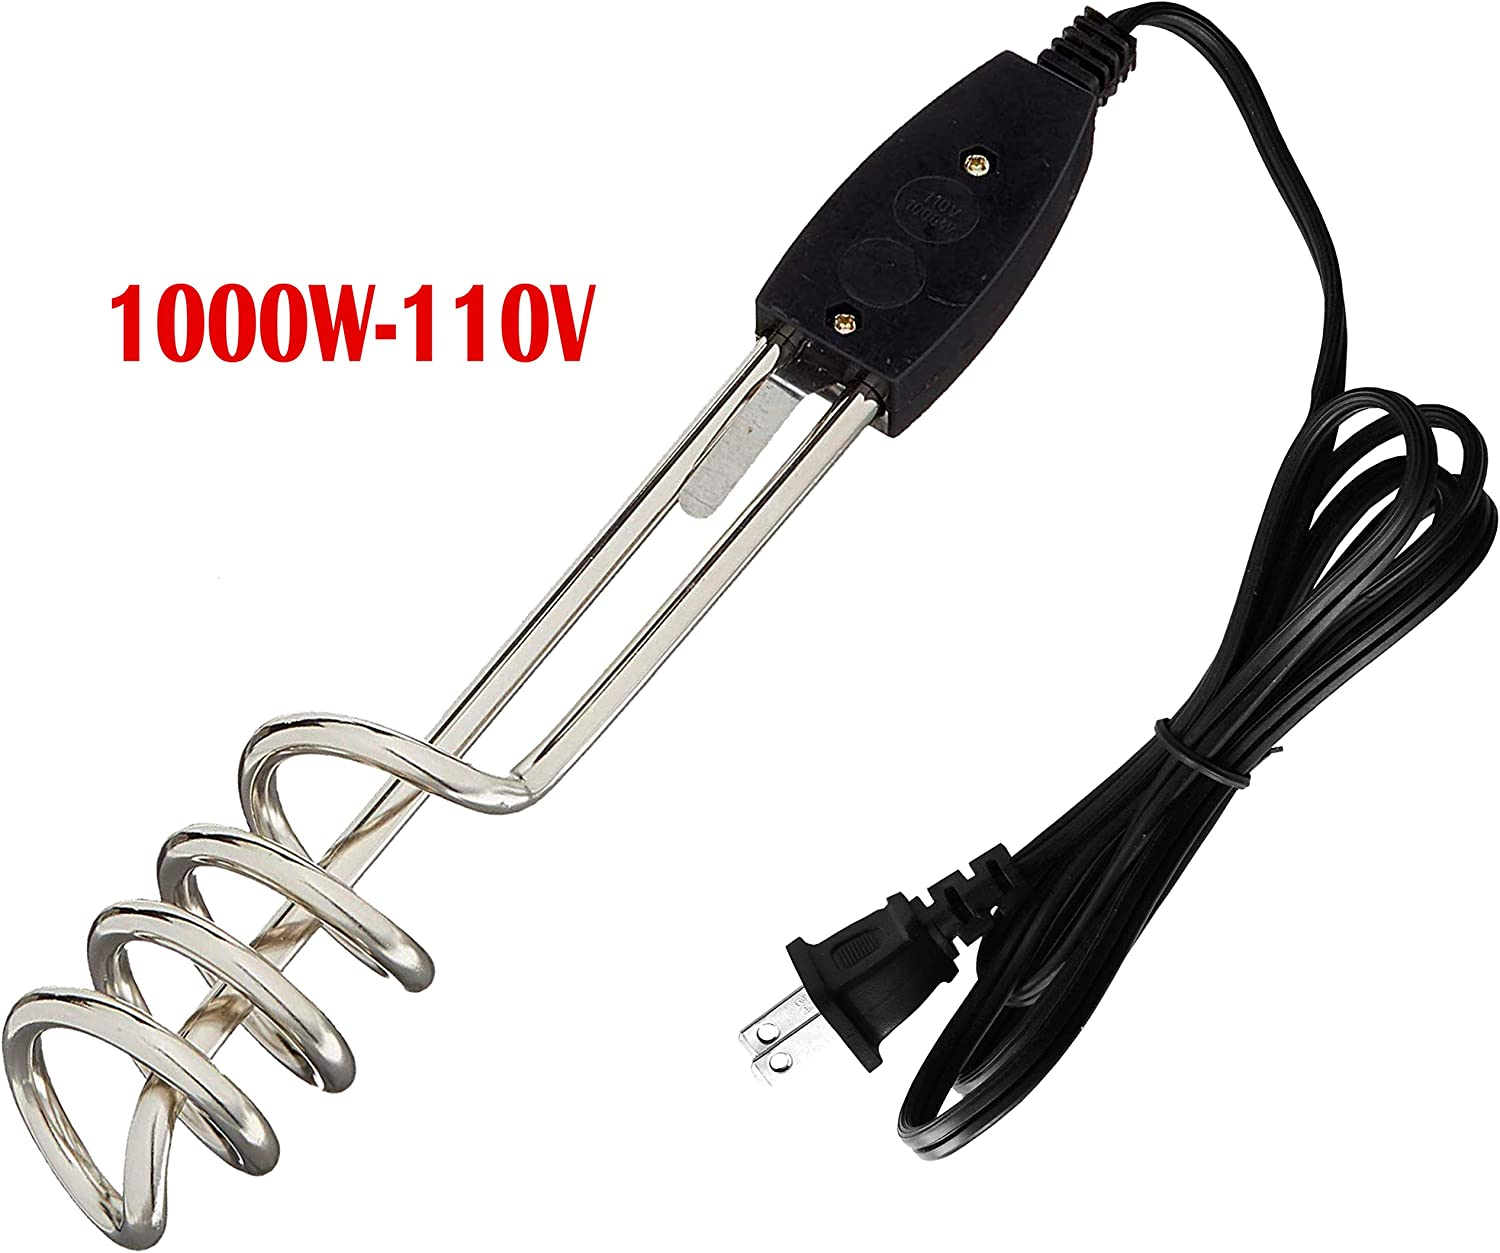 110V-1000W Water Heater Portable Electric Immersion Element Boiler Travel NEW